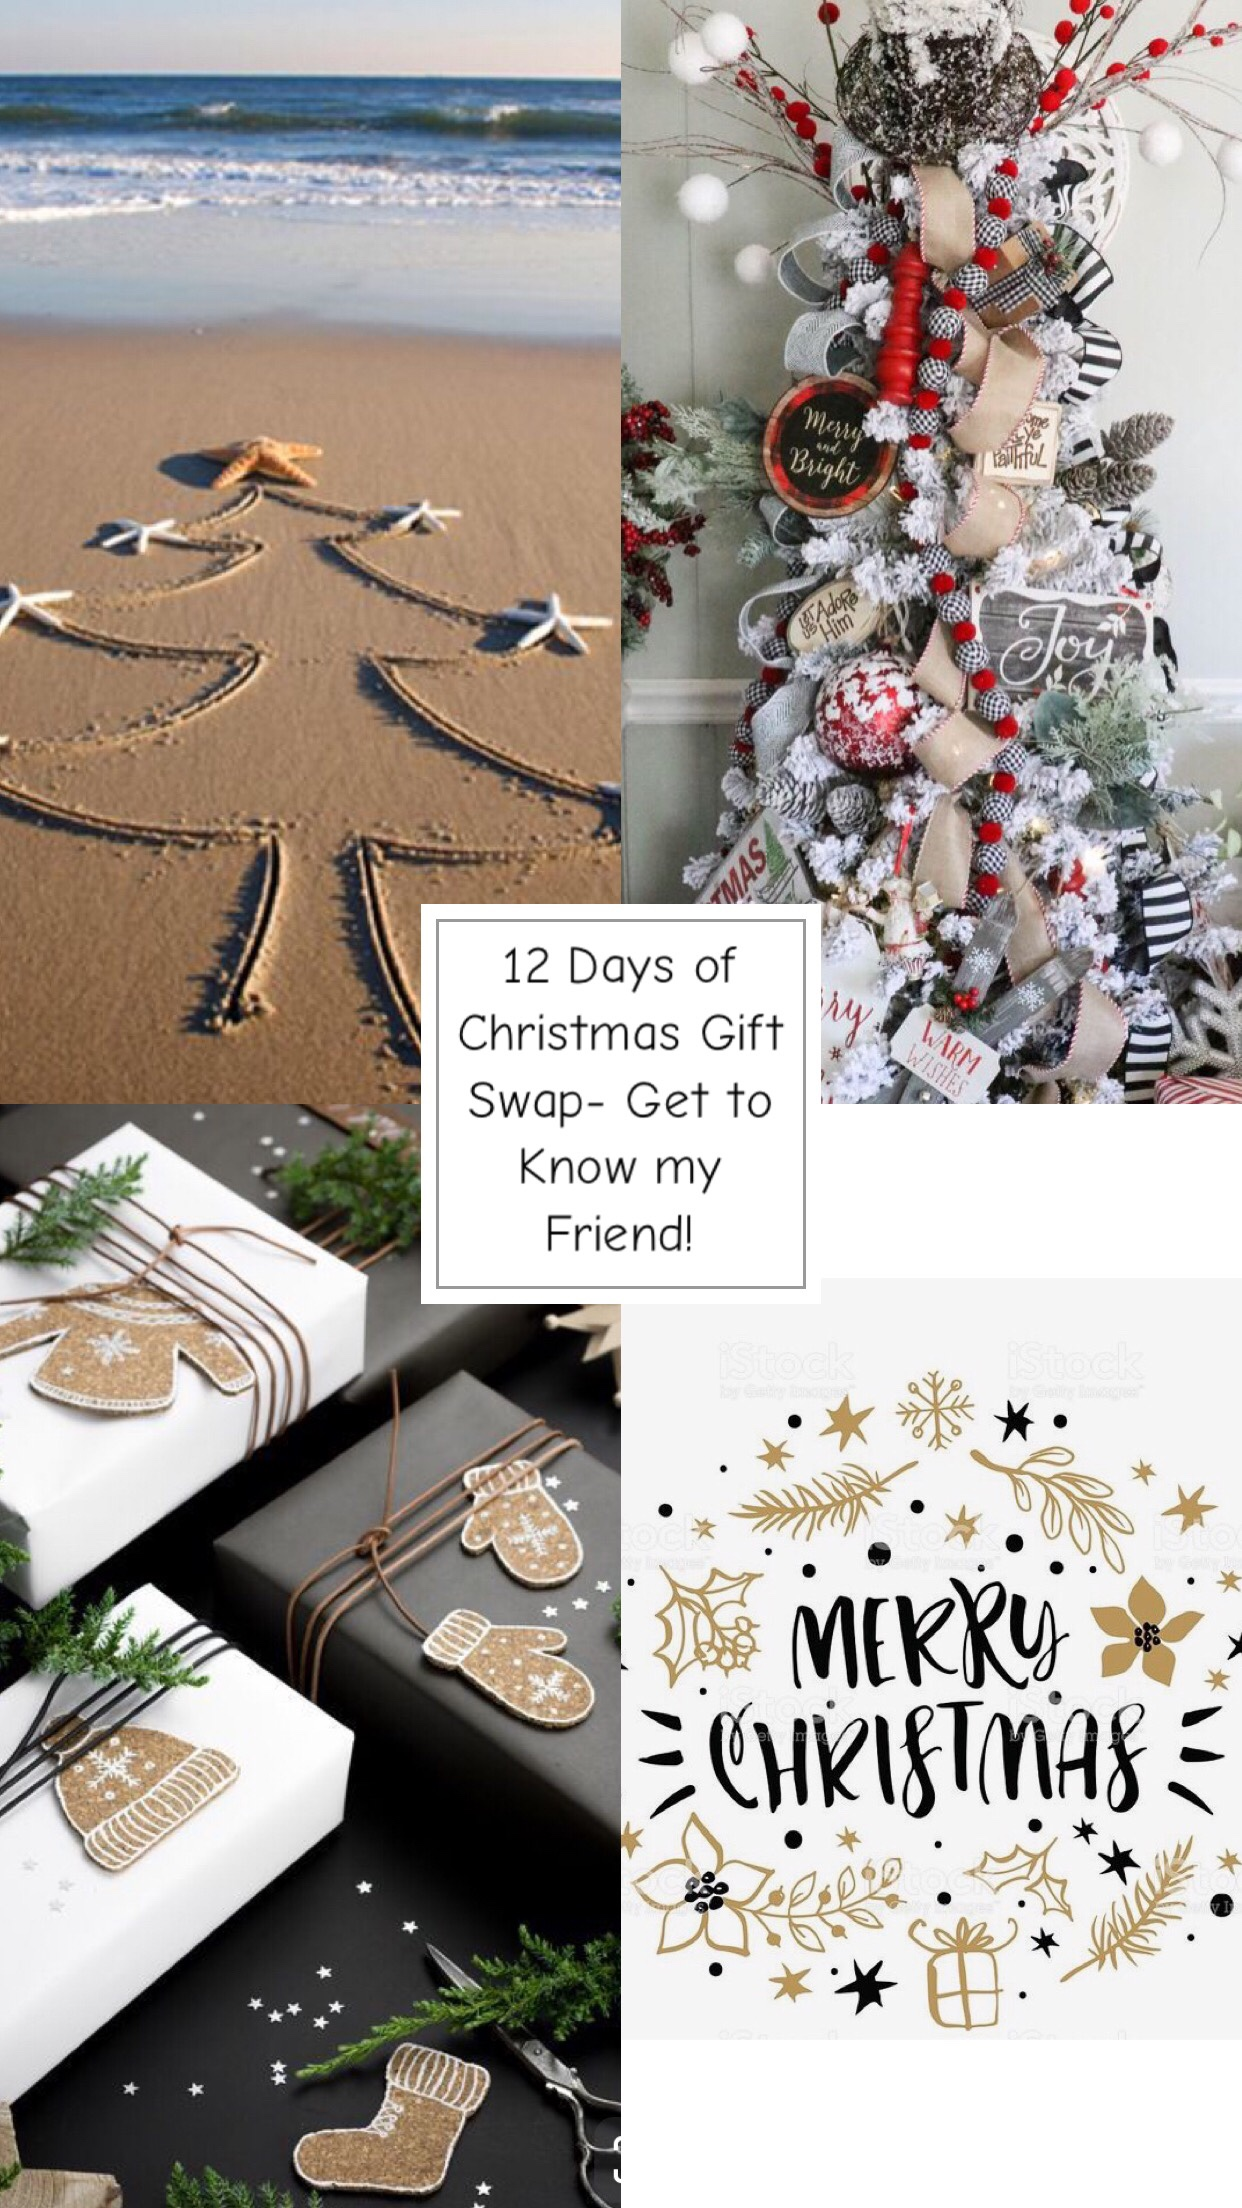 Christmas Gift For A Friend 12 Days Of Christmas Gift Swap Get To Know My Friend Tag Her